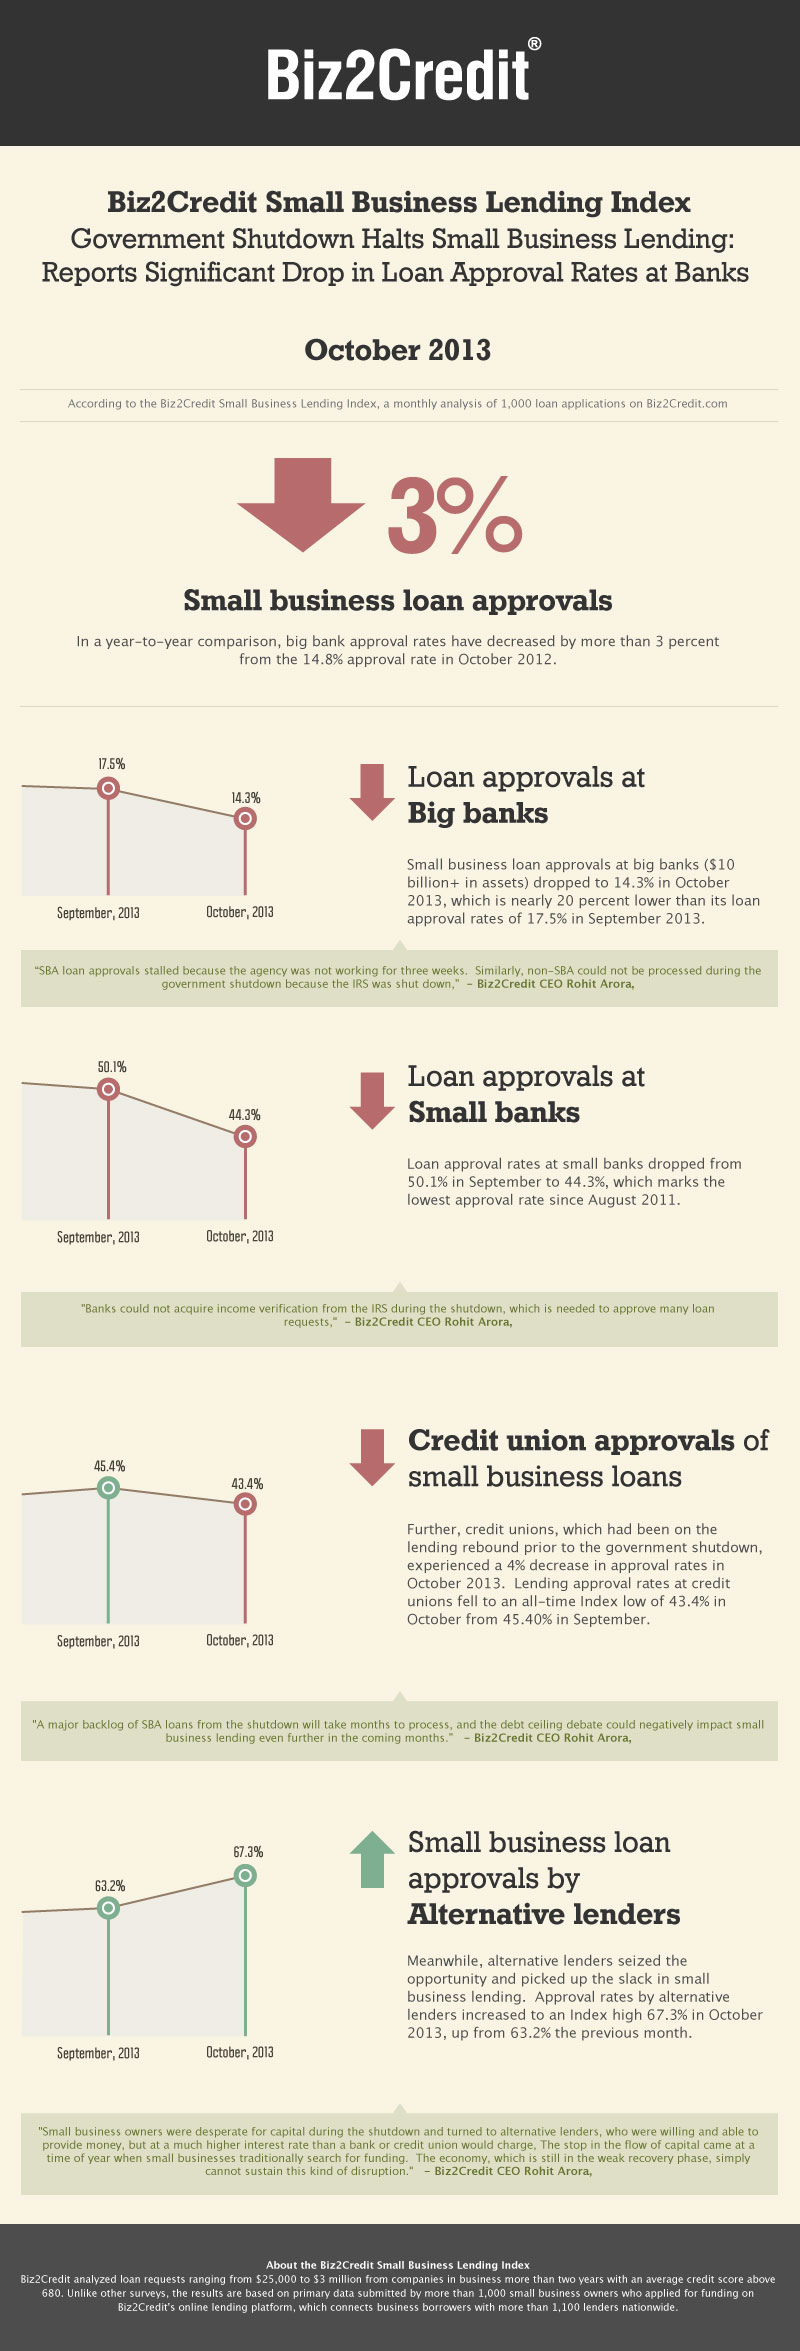 Oct 2013 Lending Index Infographic